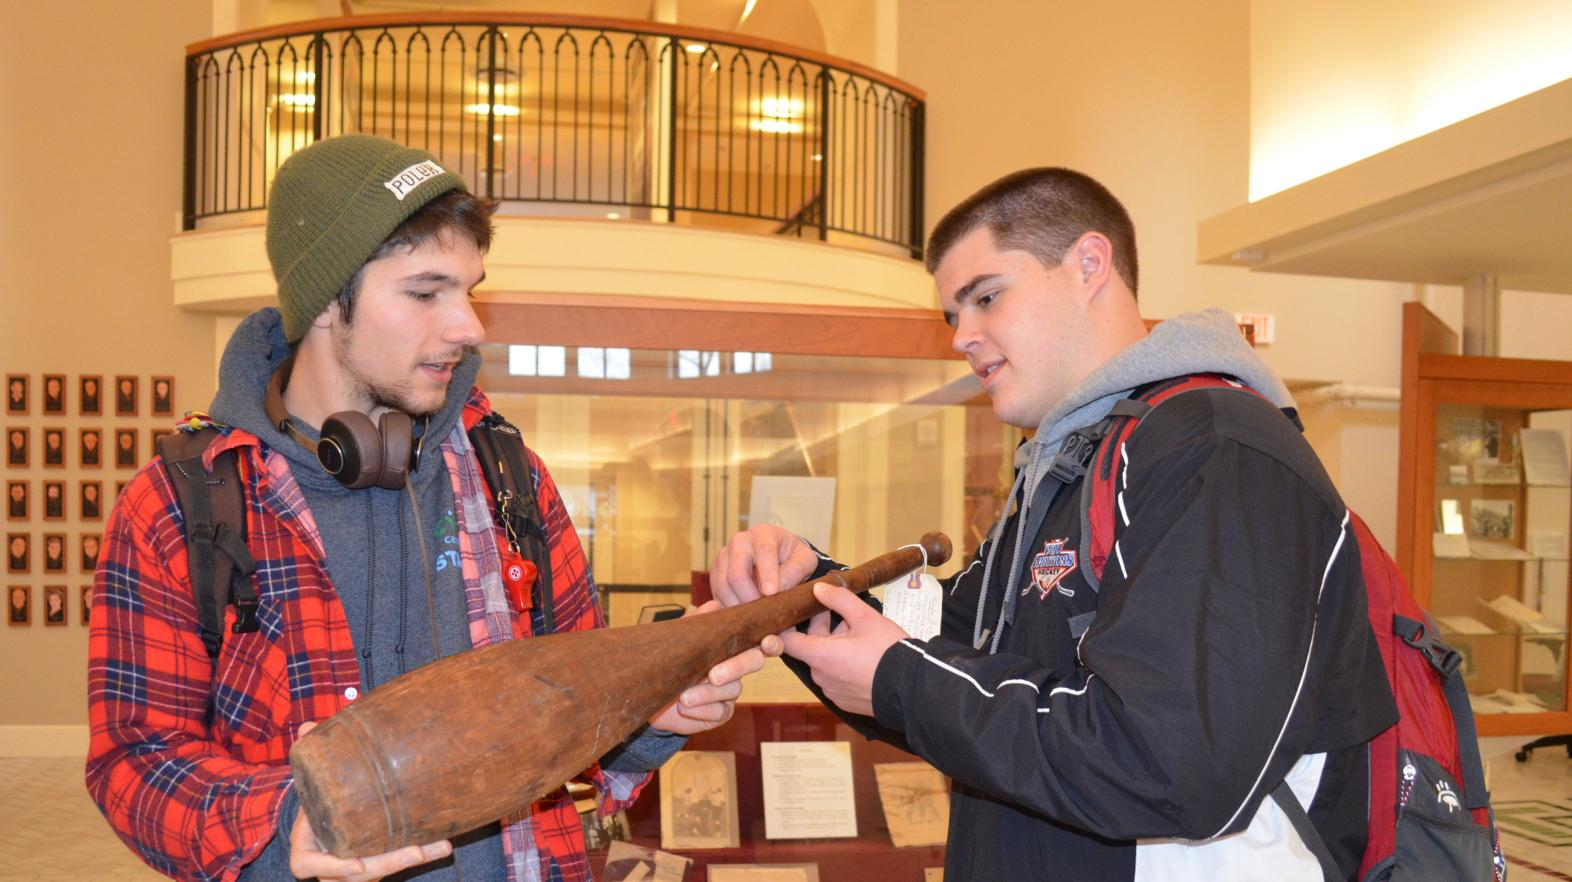 Two students examine a historic piece of pottery in the Springfield College experience.